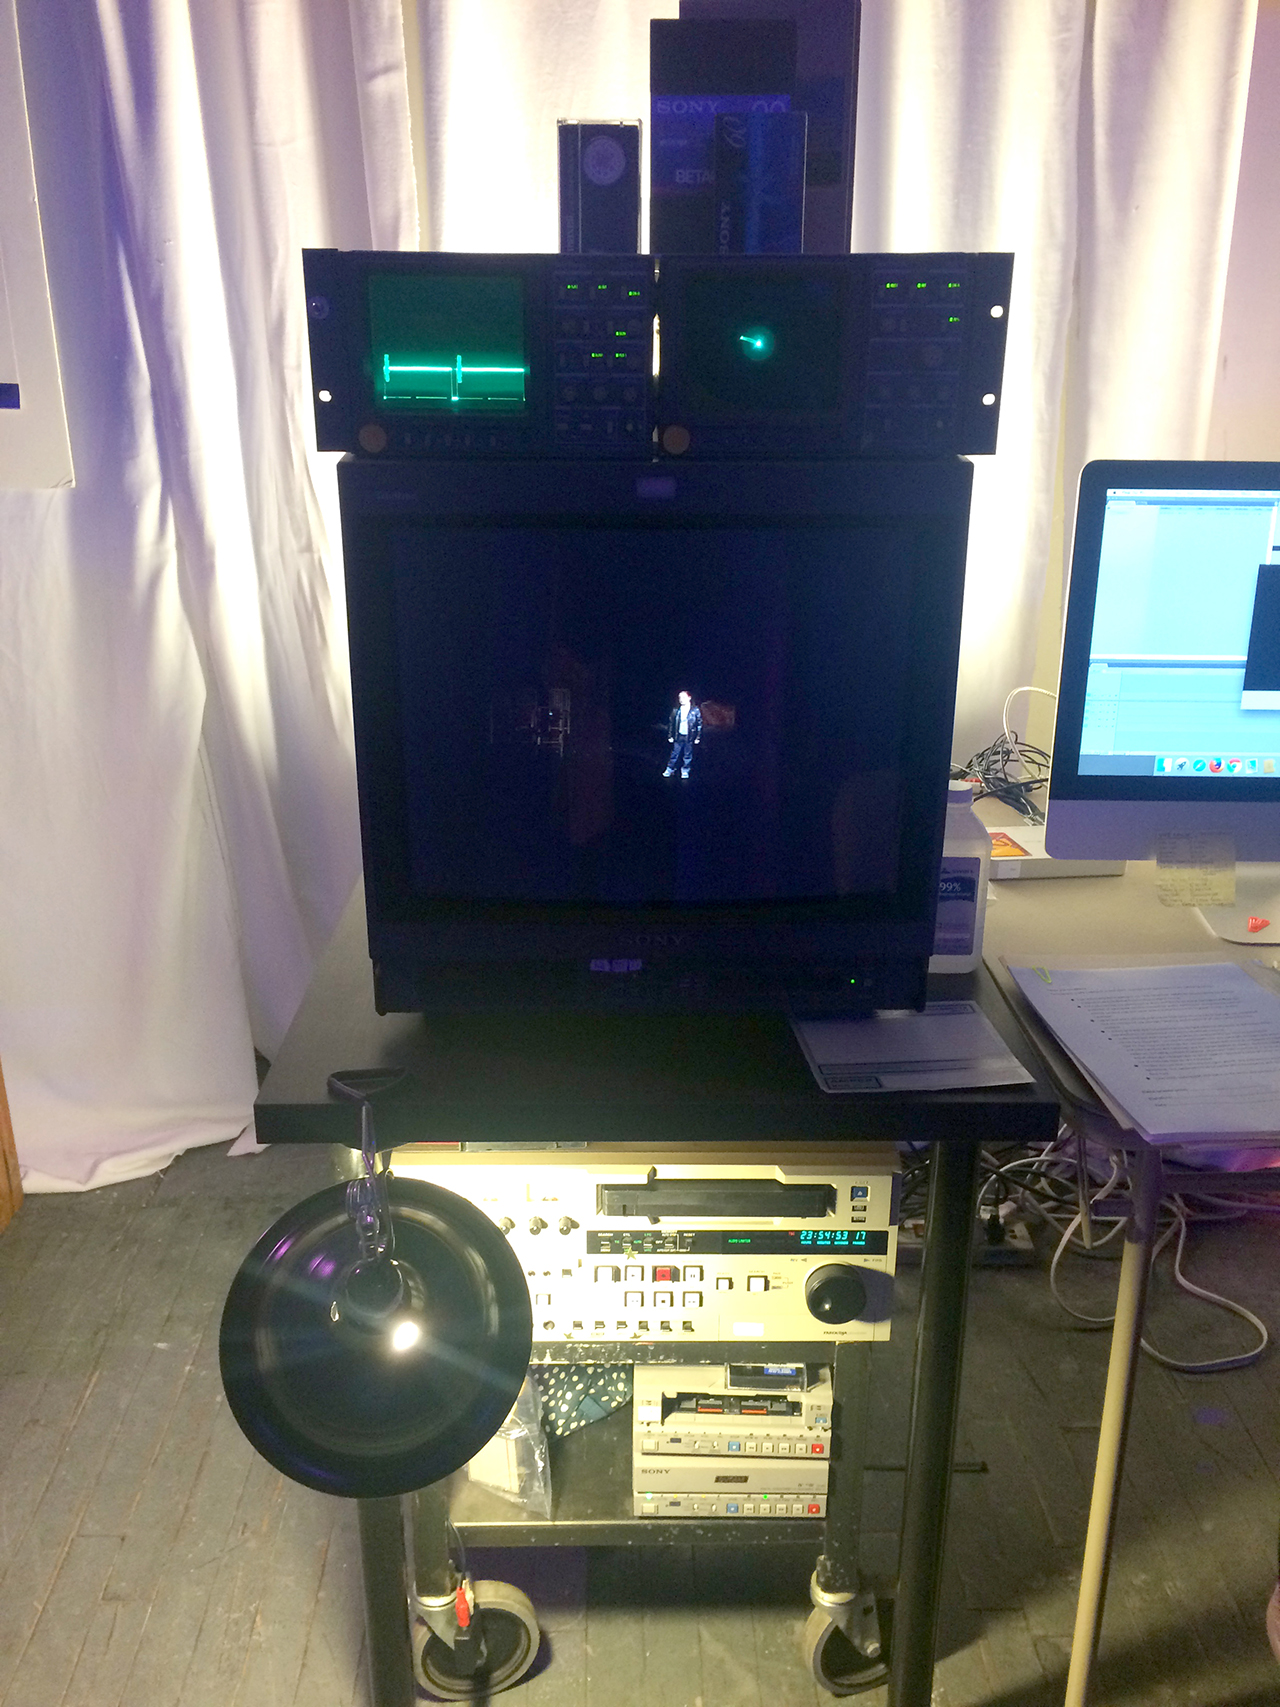 XFR Collective's rack at MIX NYC, equipped with vectorscope, wave form scope, CRT monitor, mini DV deck, and VHS deck (click to enlarge)